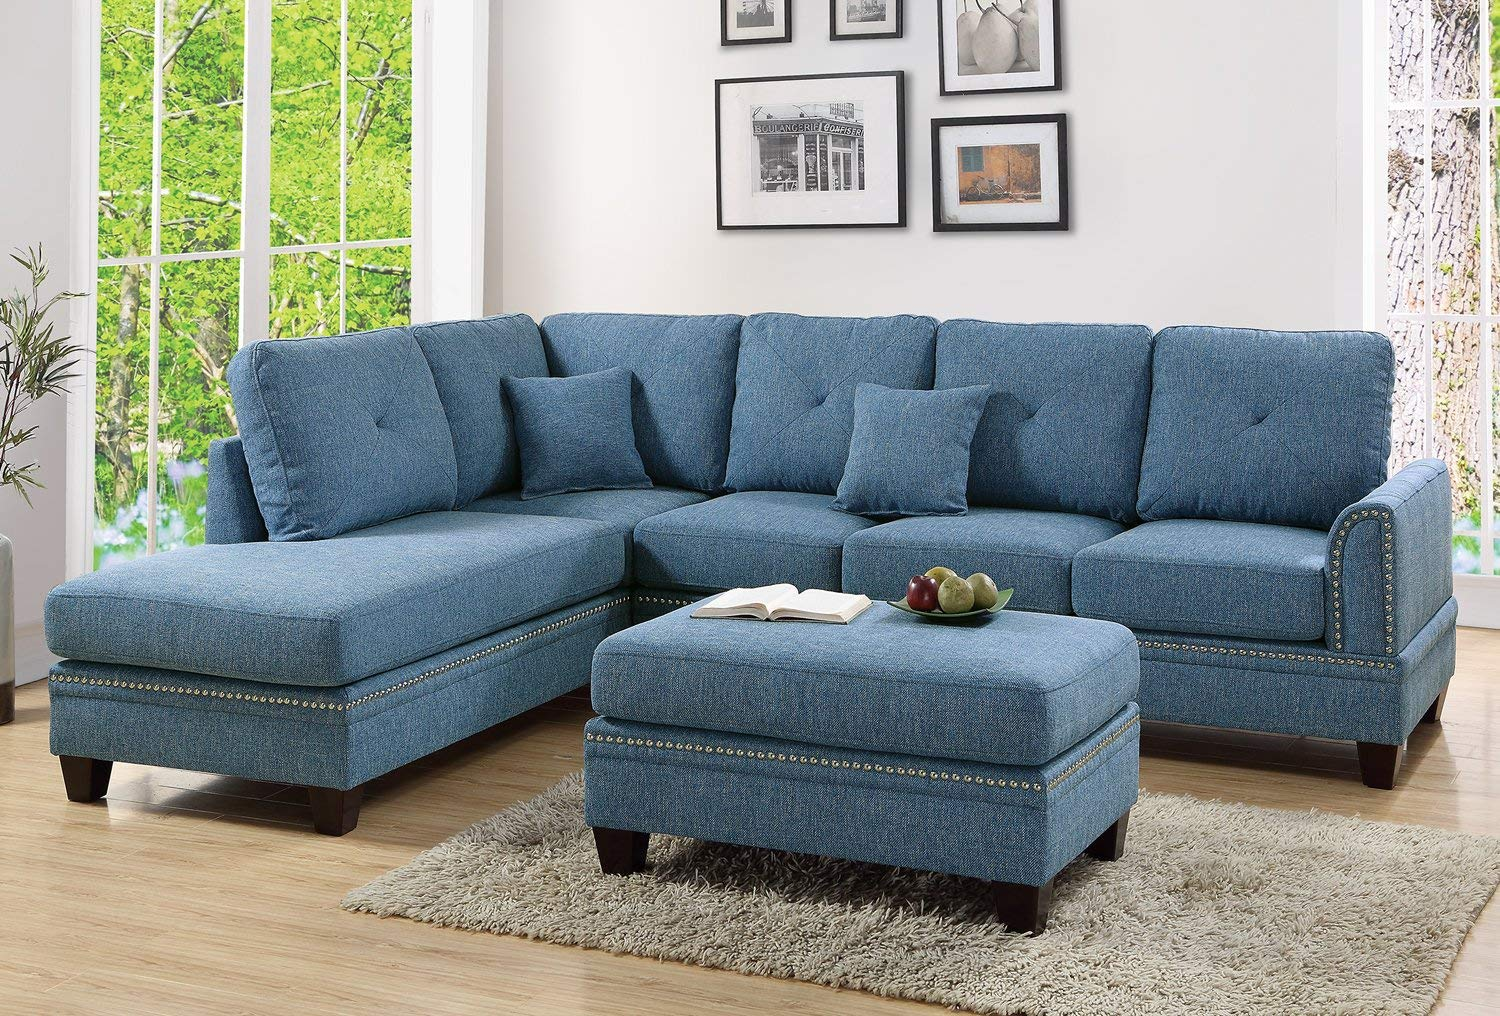 Peachy Blue 2Pc Sectional Sofa With Nail Head Trim Accents Inzonedesignstudio Interior Chair Design Inzonedesignstudiocom